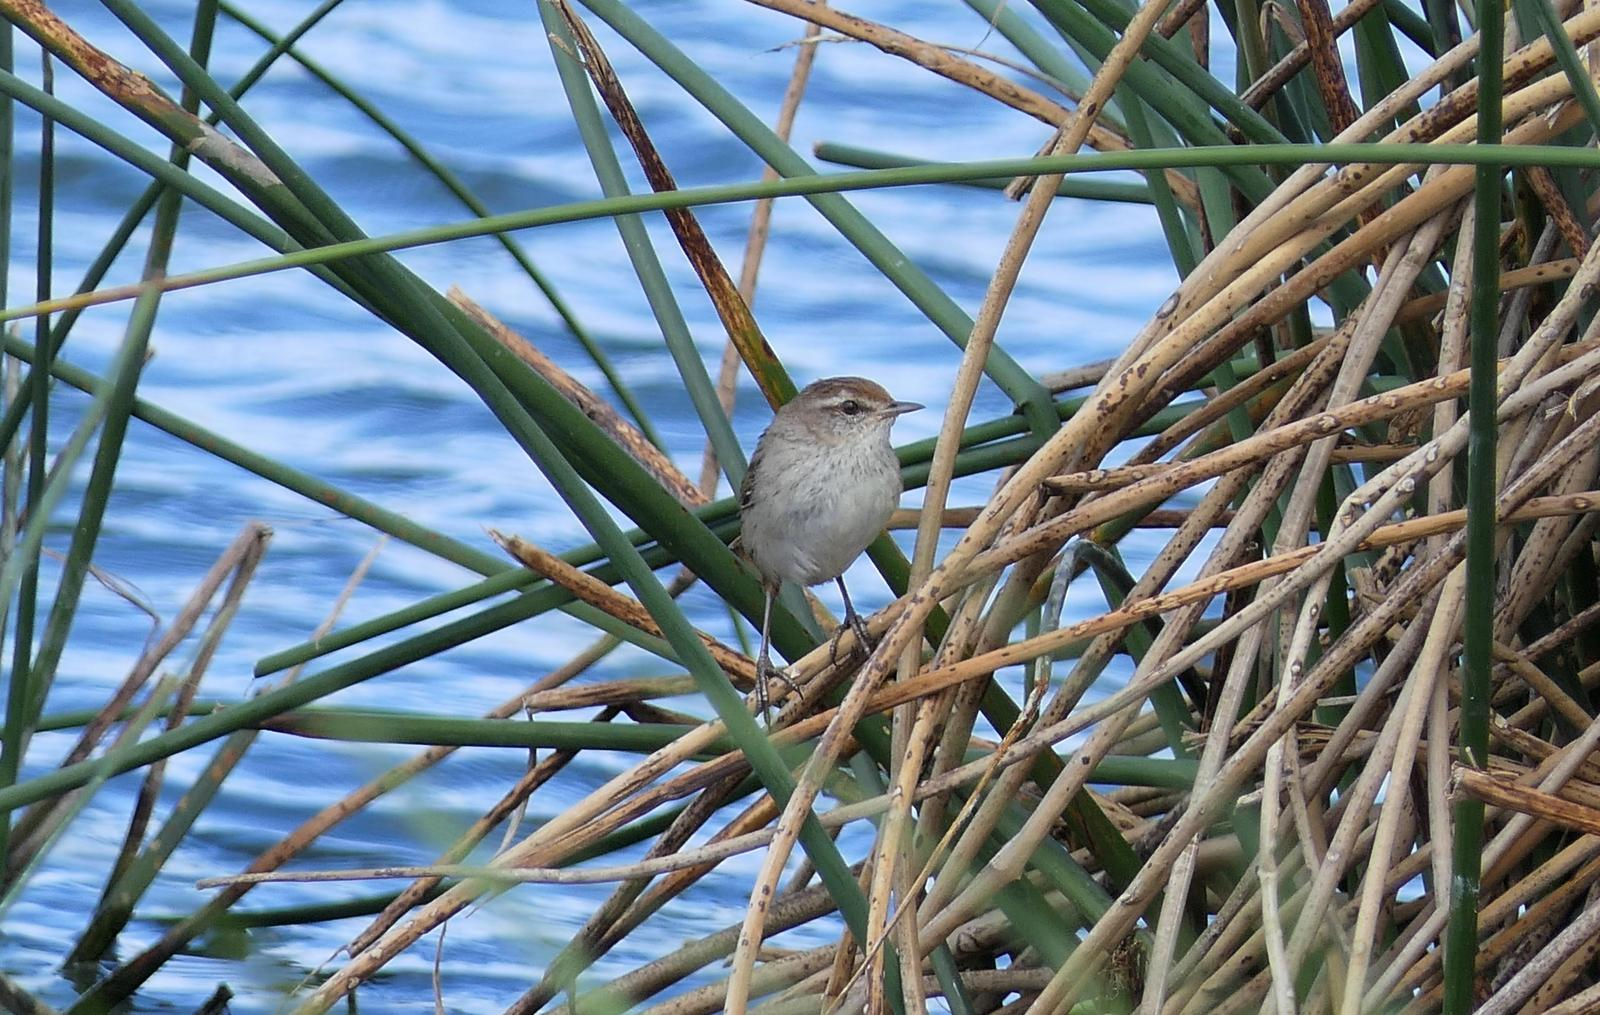 Little Grassbird Photo by Randy Siebert